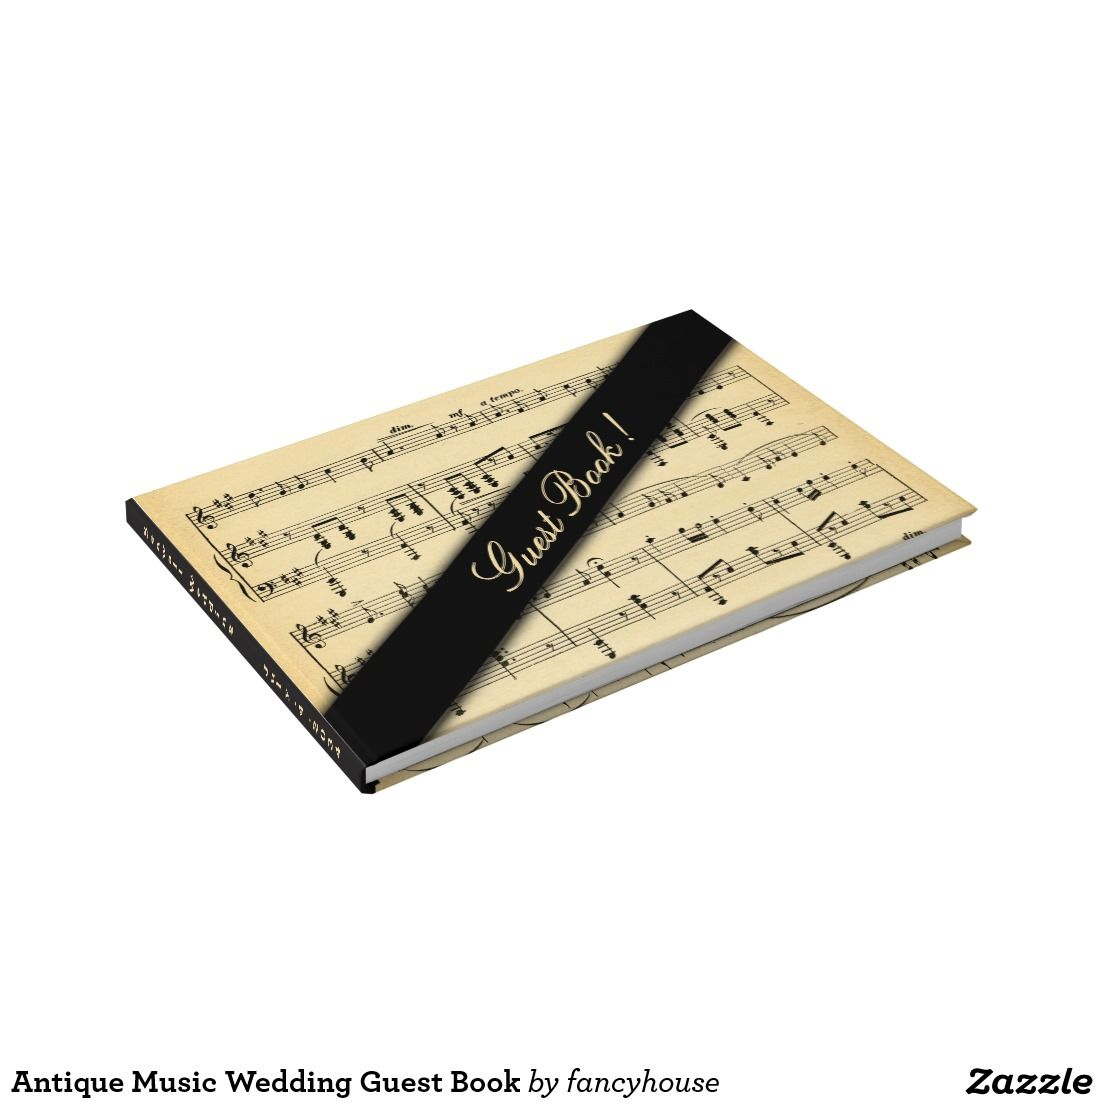 Antique Music Wedding Guest Book with matching Wedding Invitation Suite at https://www.zazzle.com/fancyhouse/products?dp=252825946313566181&cg=196471289711553268&rf=238207742997519561&tc=poly